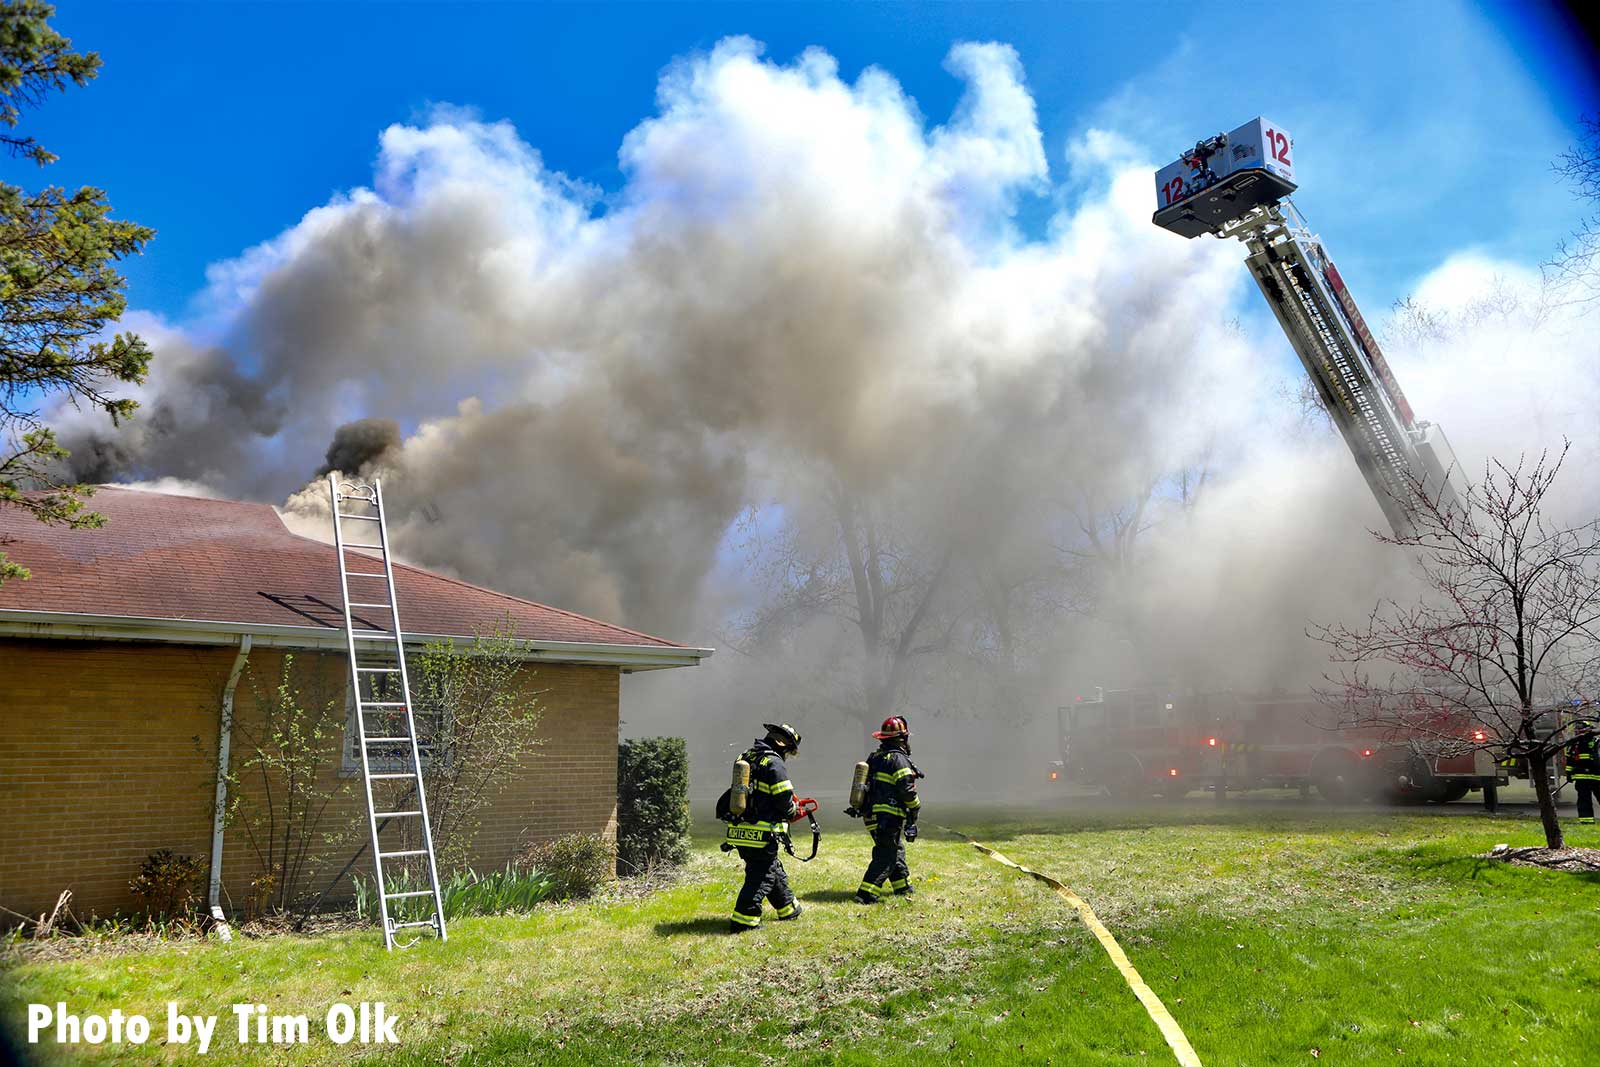 Ladders are raised and a tower ladder is seen